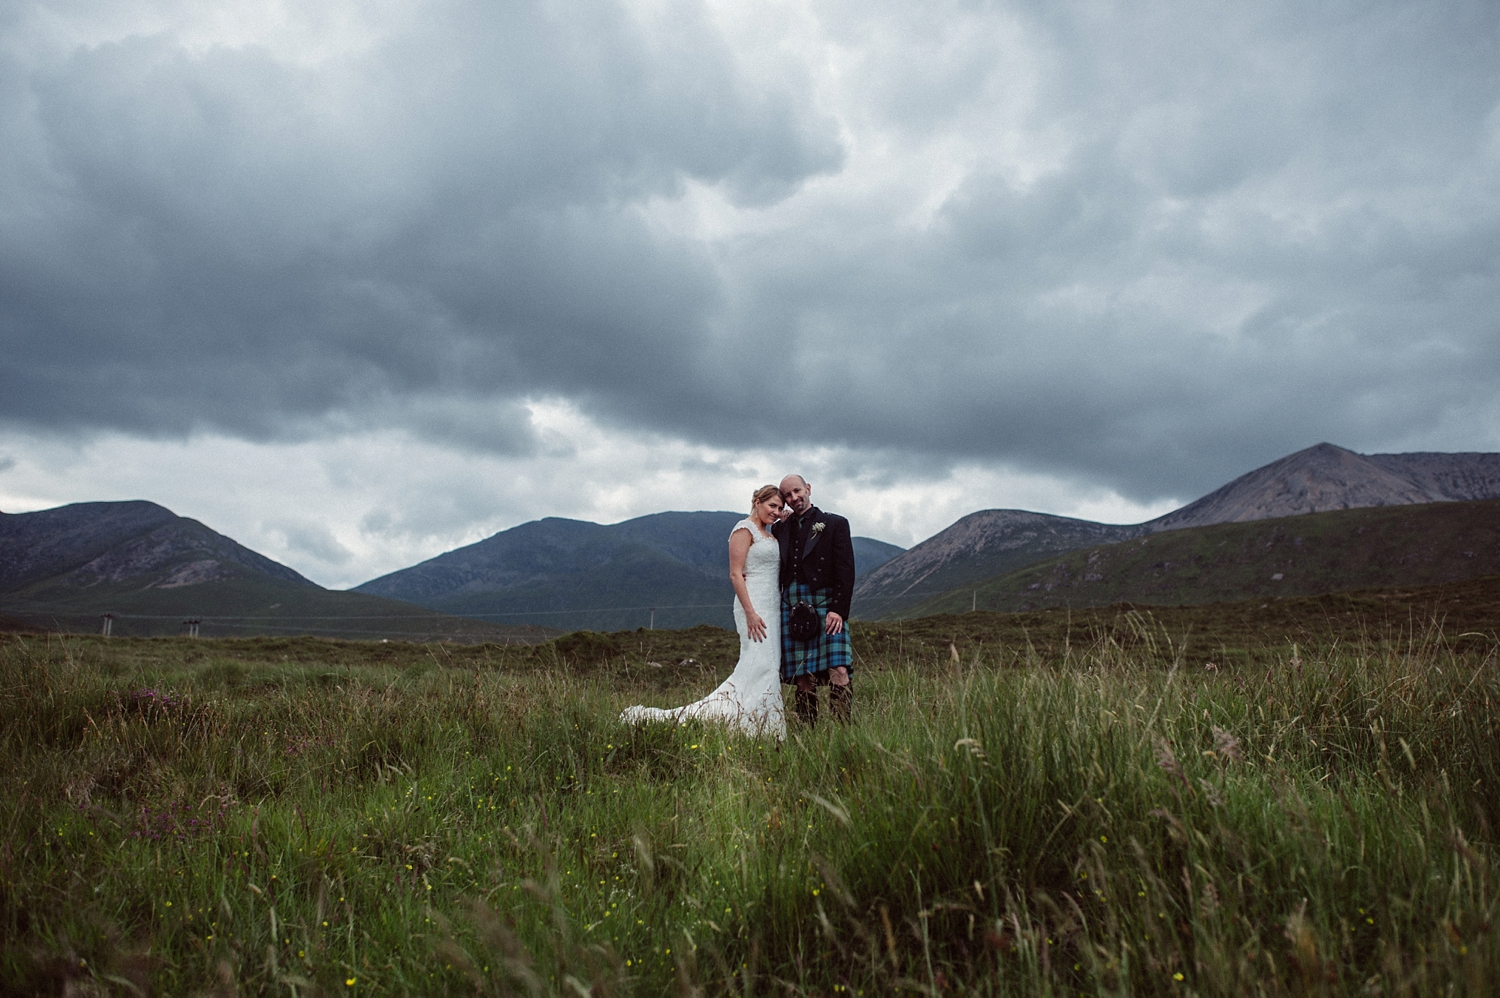 146-lisa-devine-photography-alternative-wedding-photography-skye-scotland.JPG